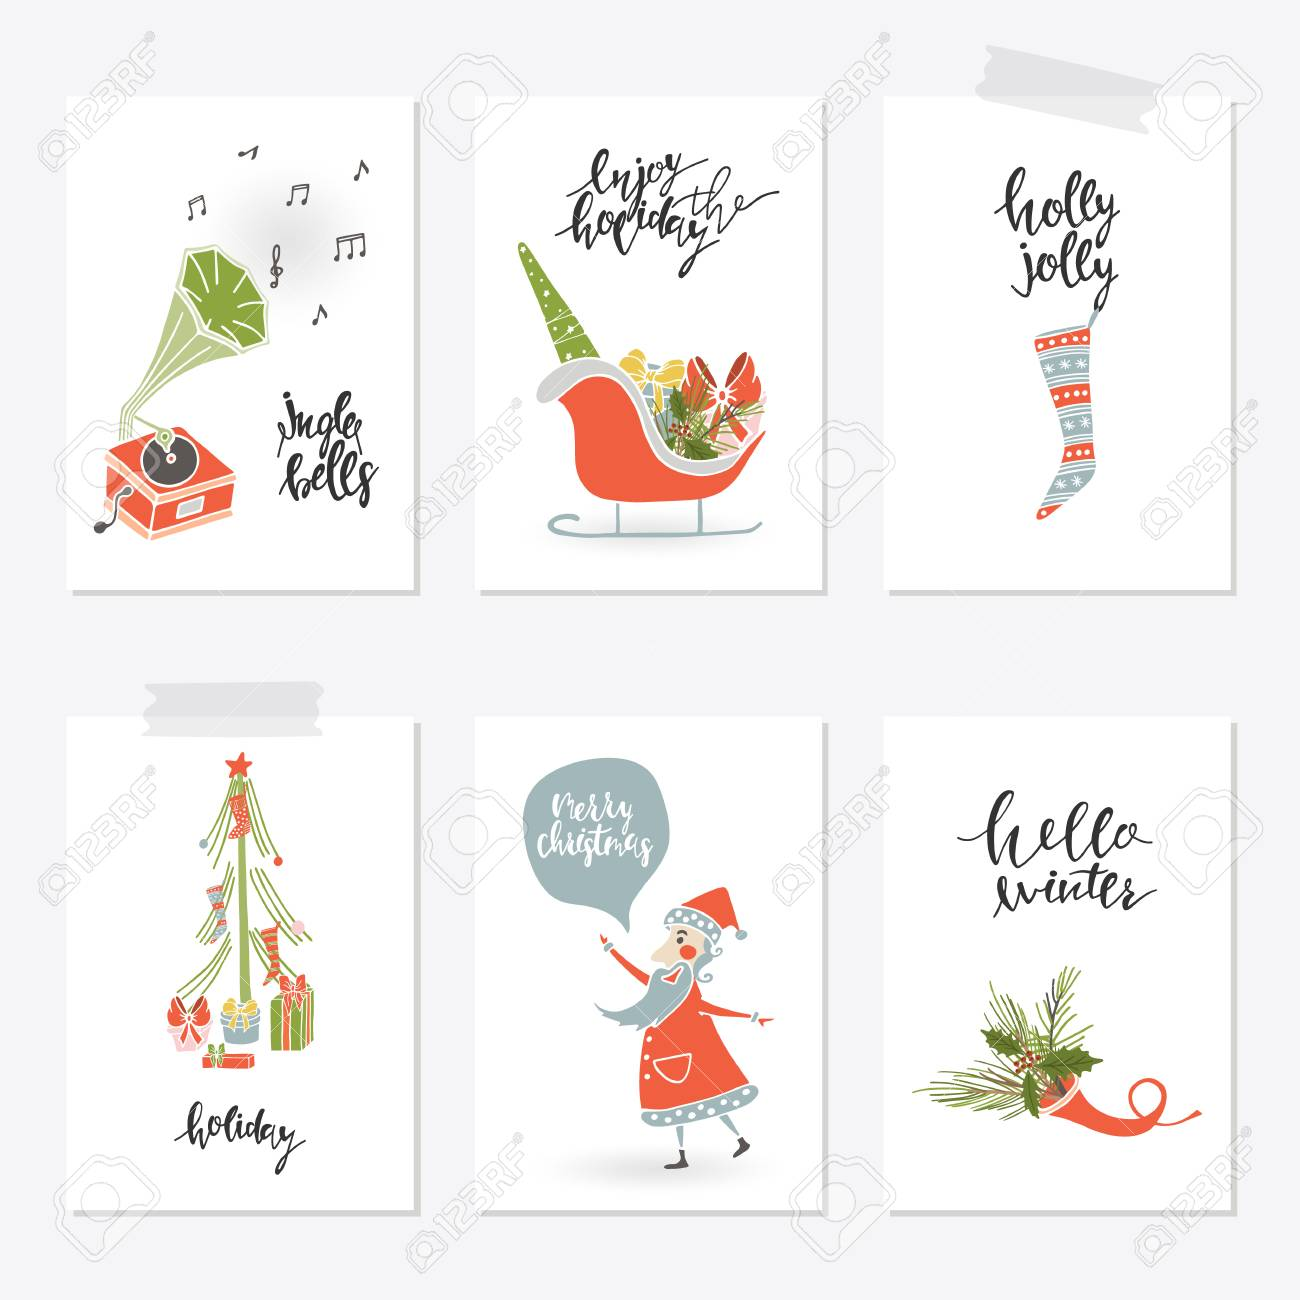 Collection Merry Christmas Gift Cards. Royalty Free Cliparts ...